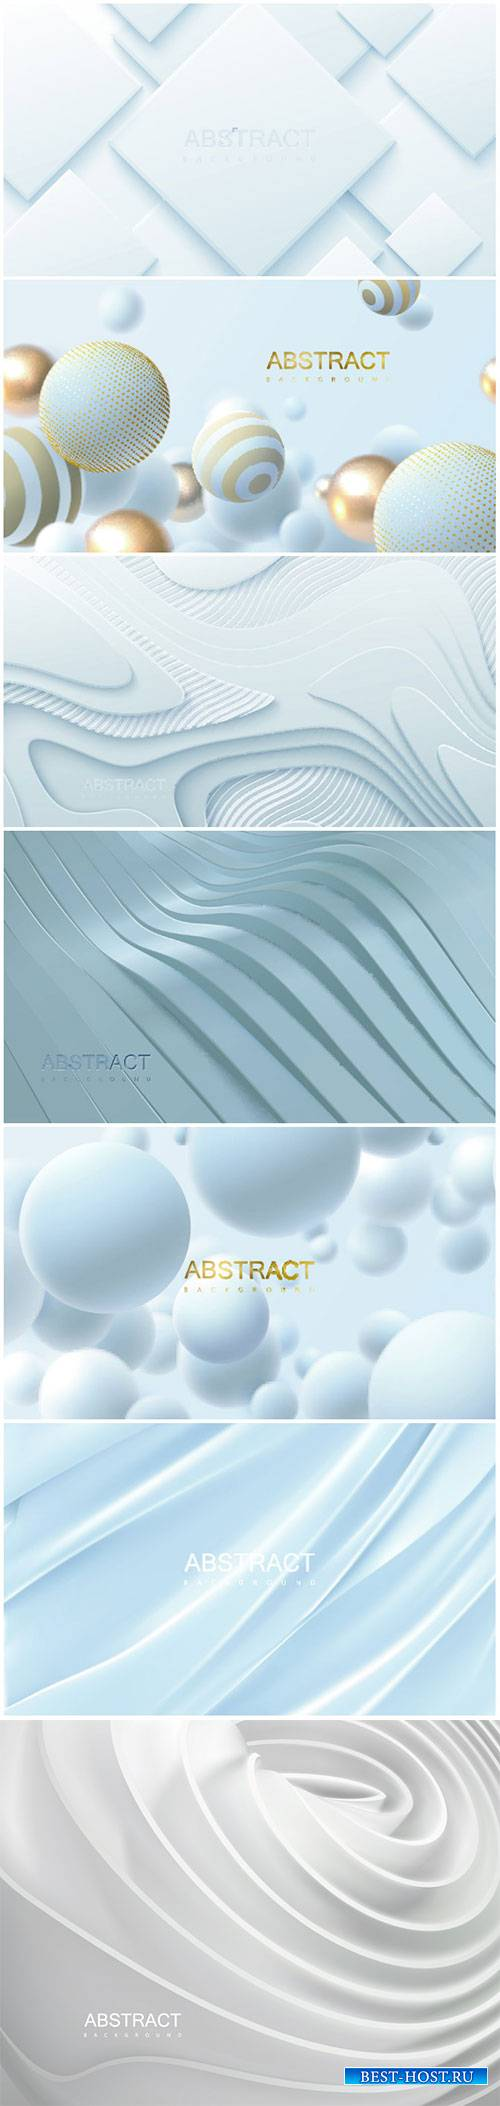 Realistic 3d vector background